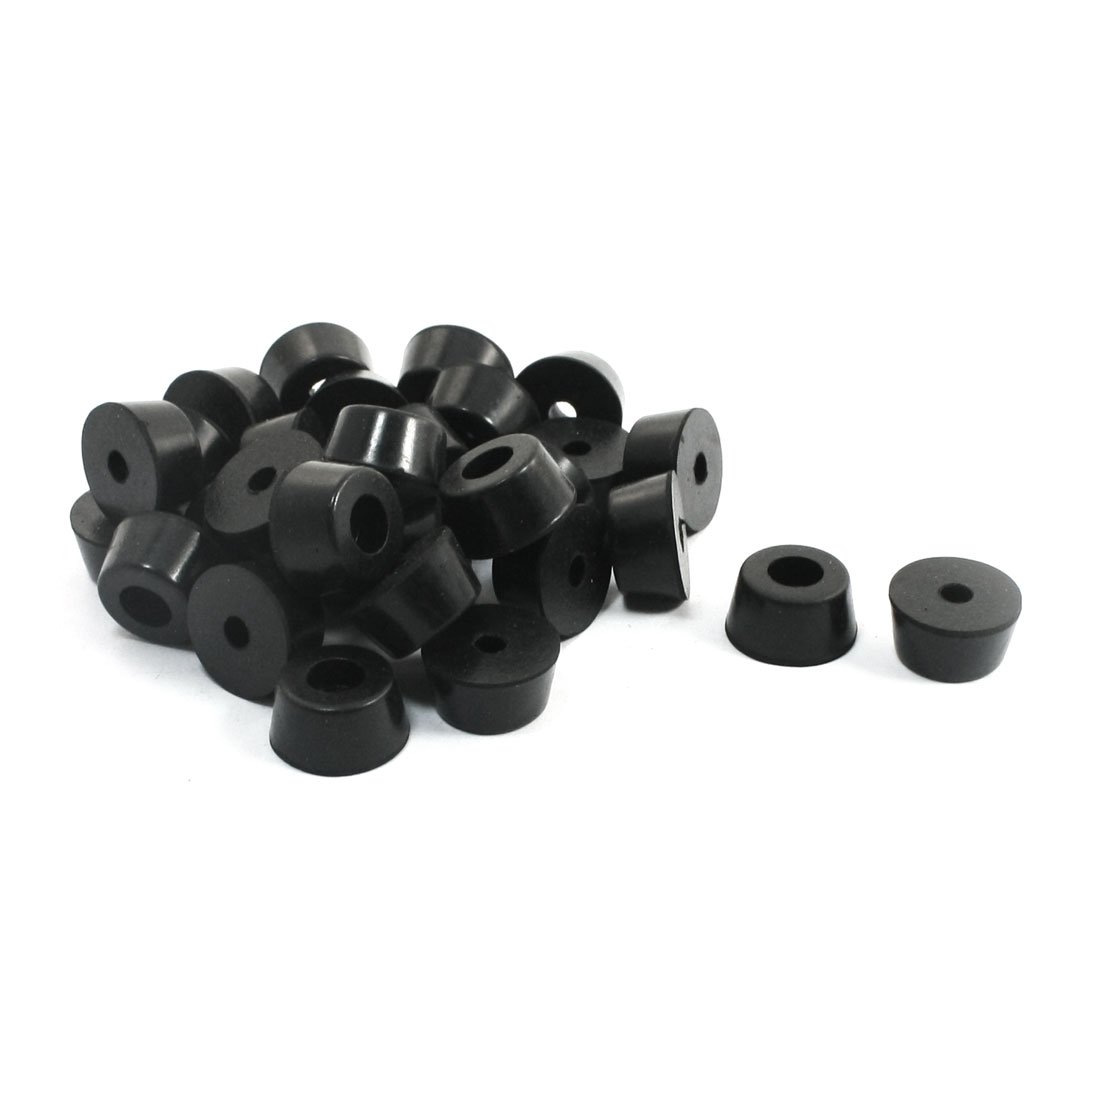 UXCELL Home Furniture Black Universal Tapered Rubber Feet Bumper Washer Brushing 13Mm X 7Mm 30 Pcs